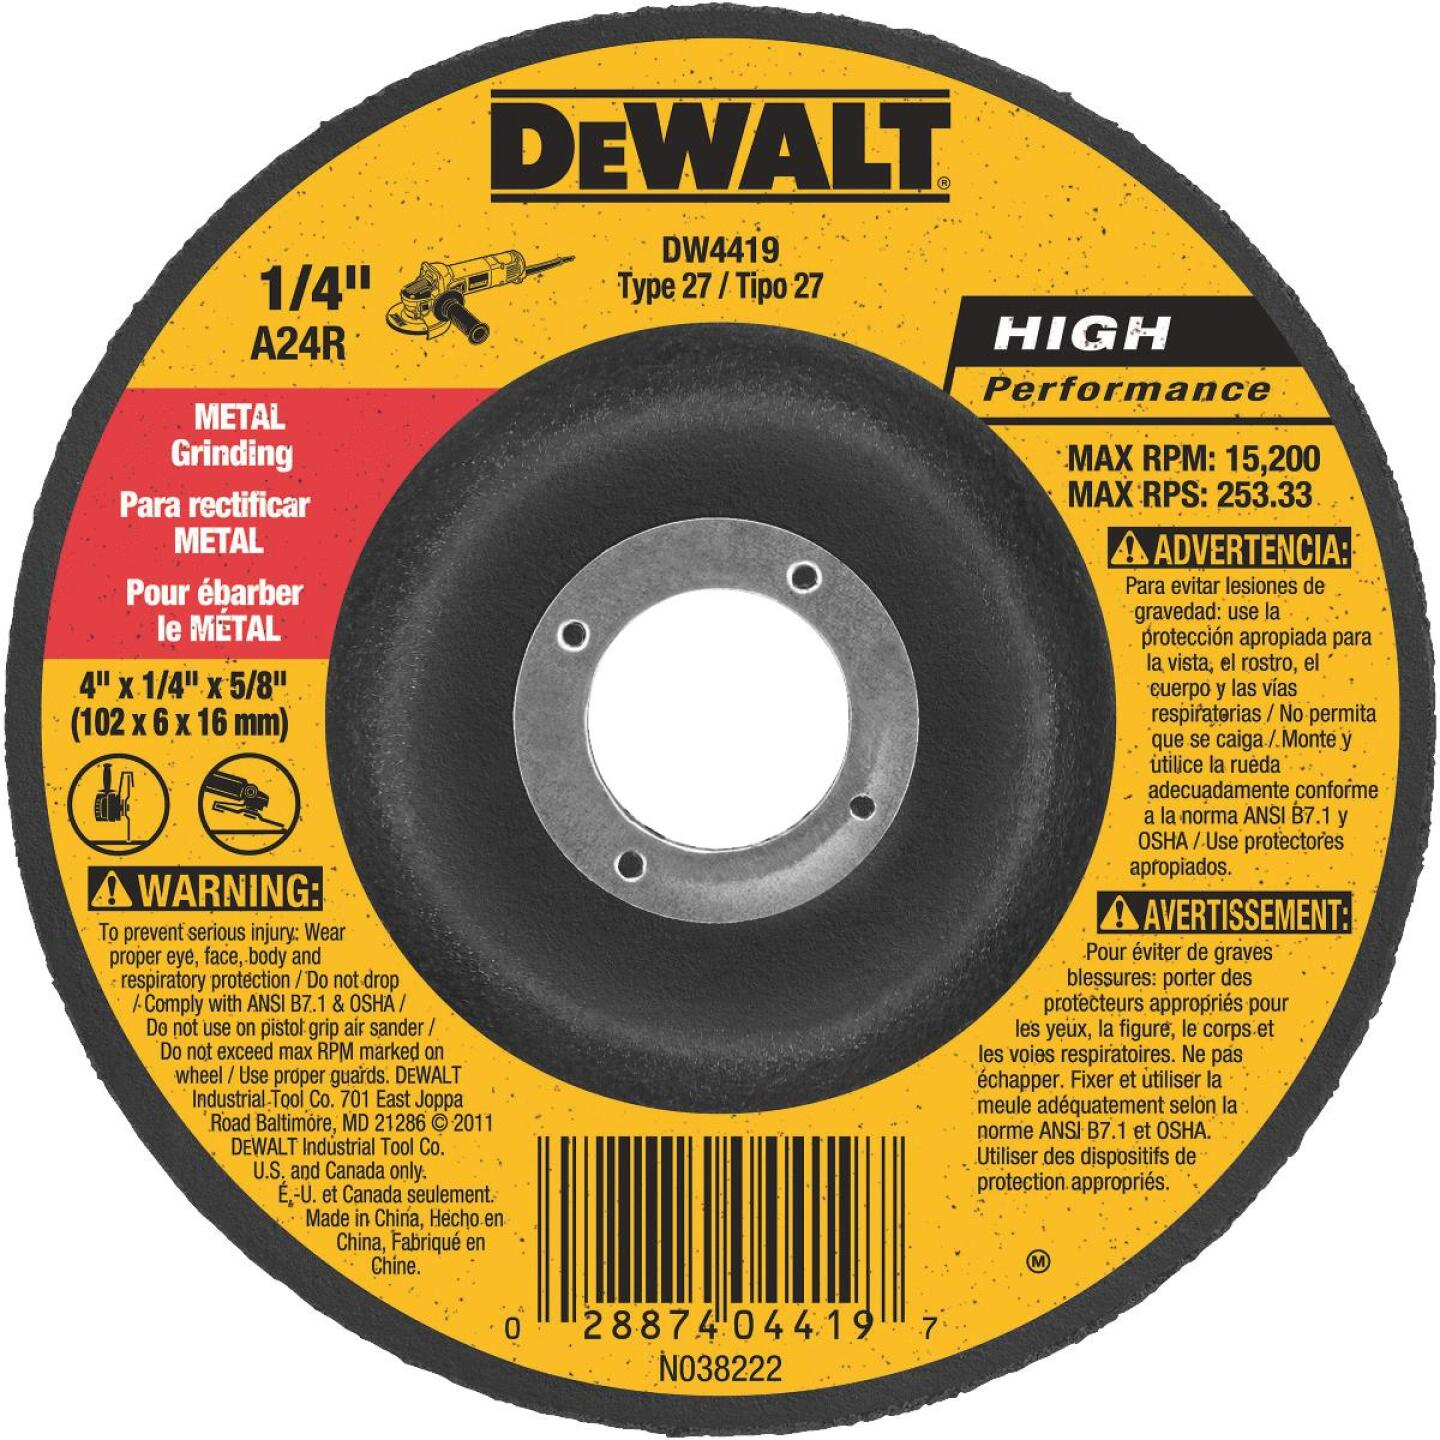 DeWalt HP Type 27 4 In. x 1/4 In. x 5/8 In. Metal Grinding Cut-Off Wheel Image 1